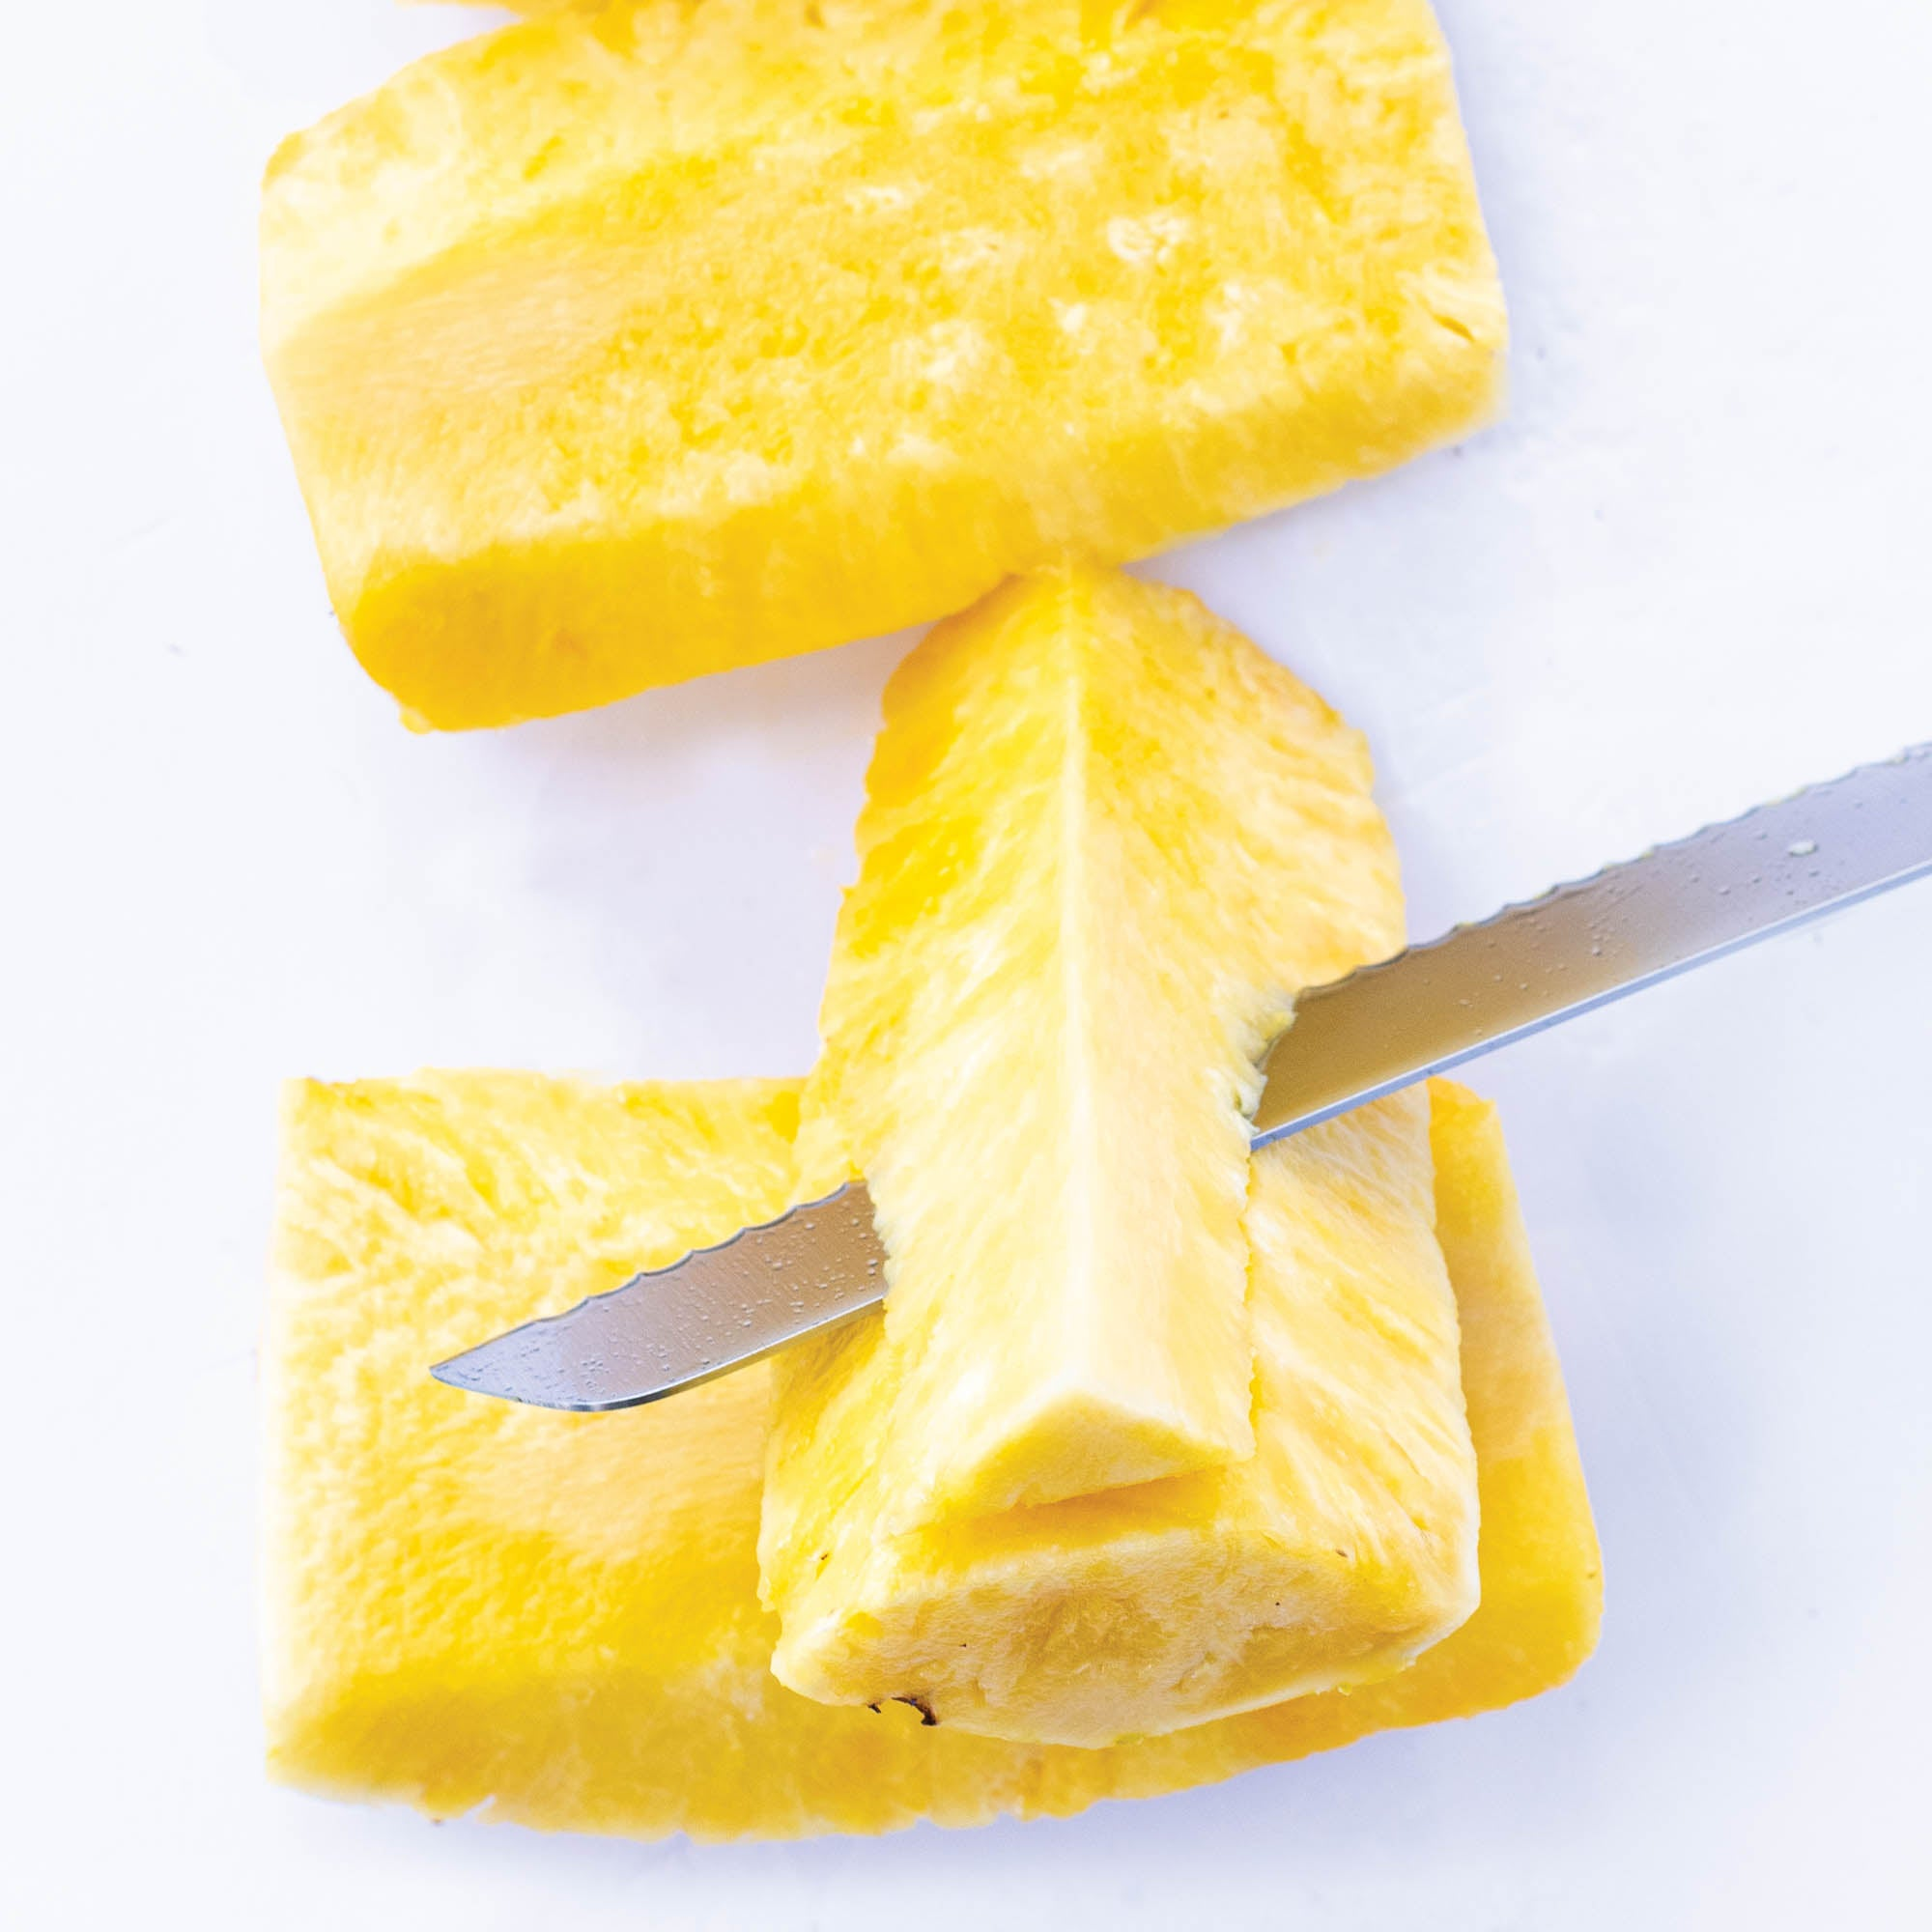 Trimming pineapple core